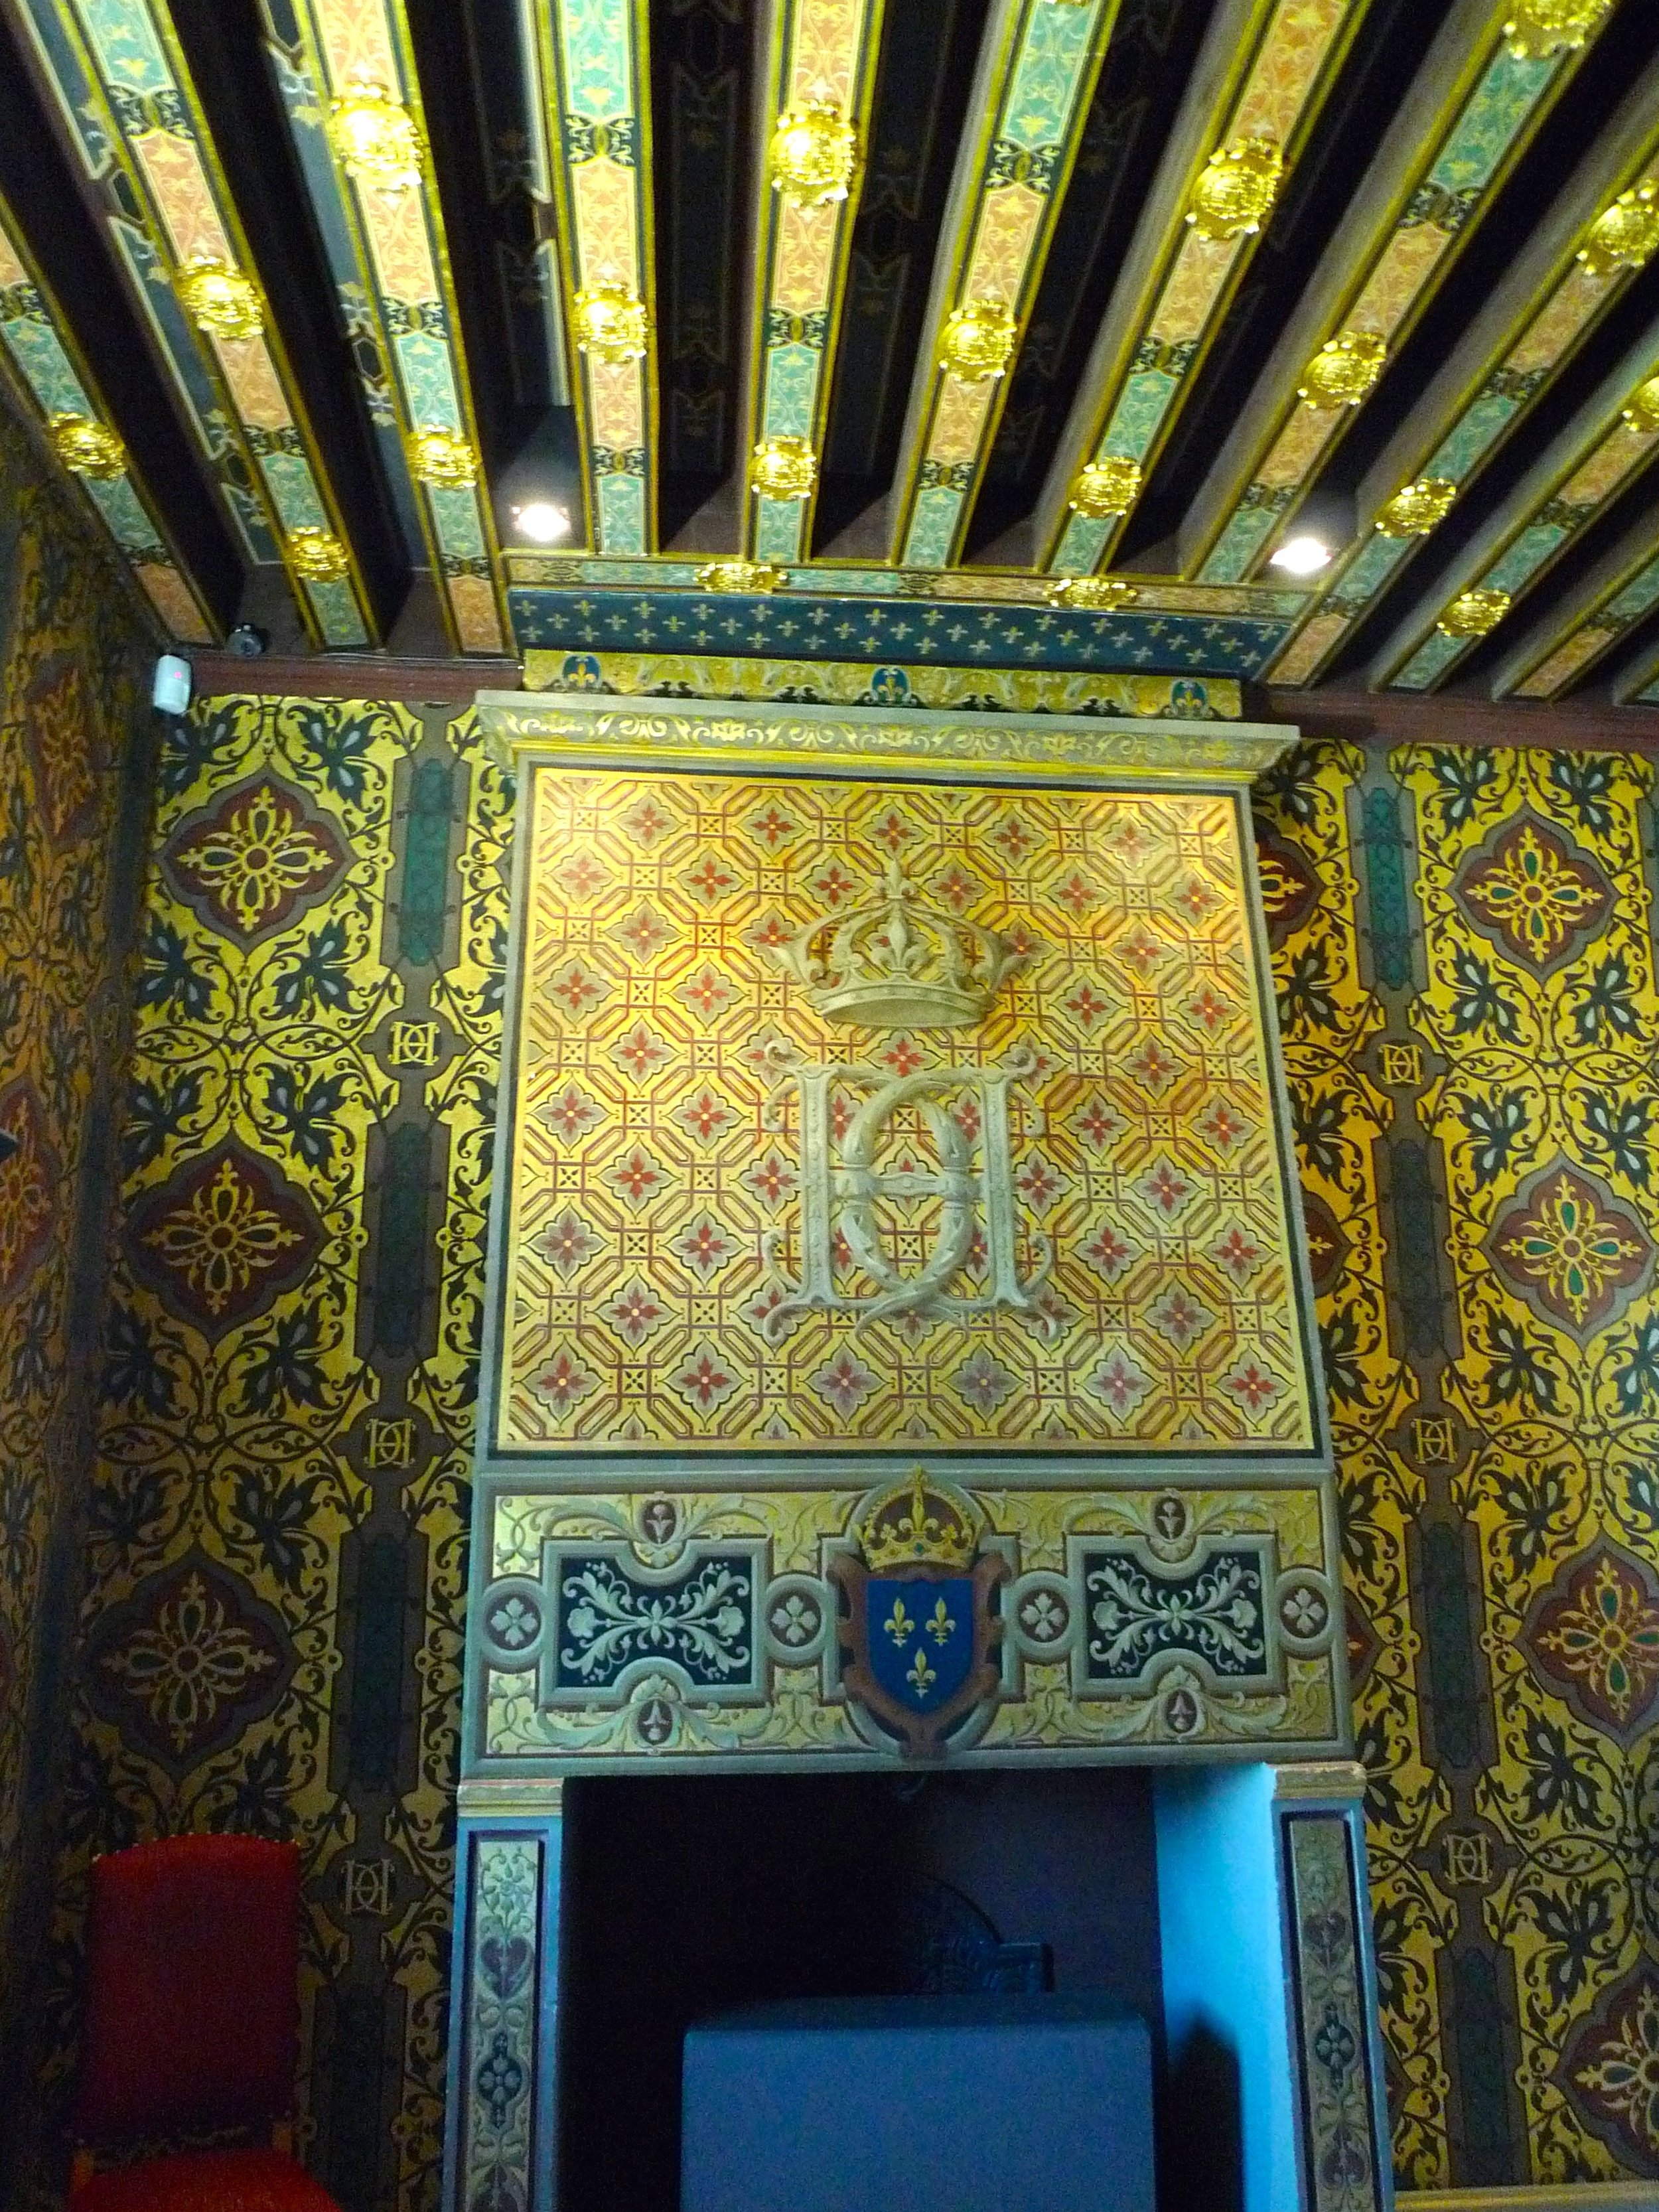 As you'd expect the Kings Bedchamber has one an ornate fireplaces